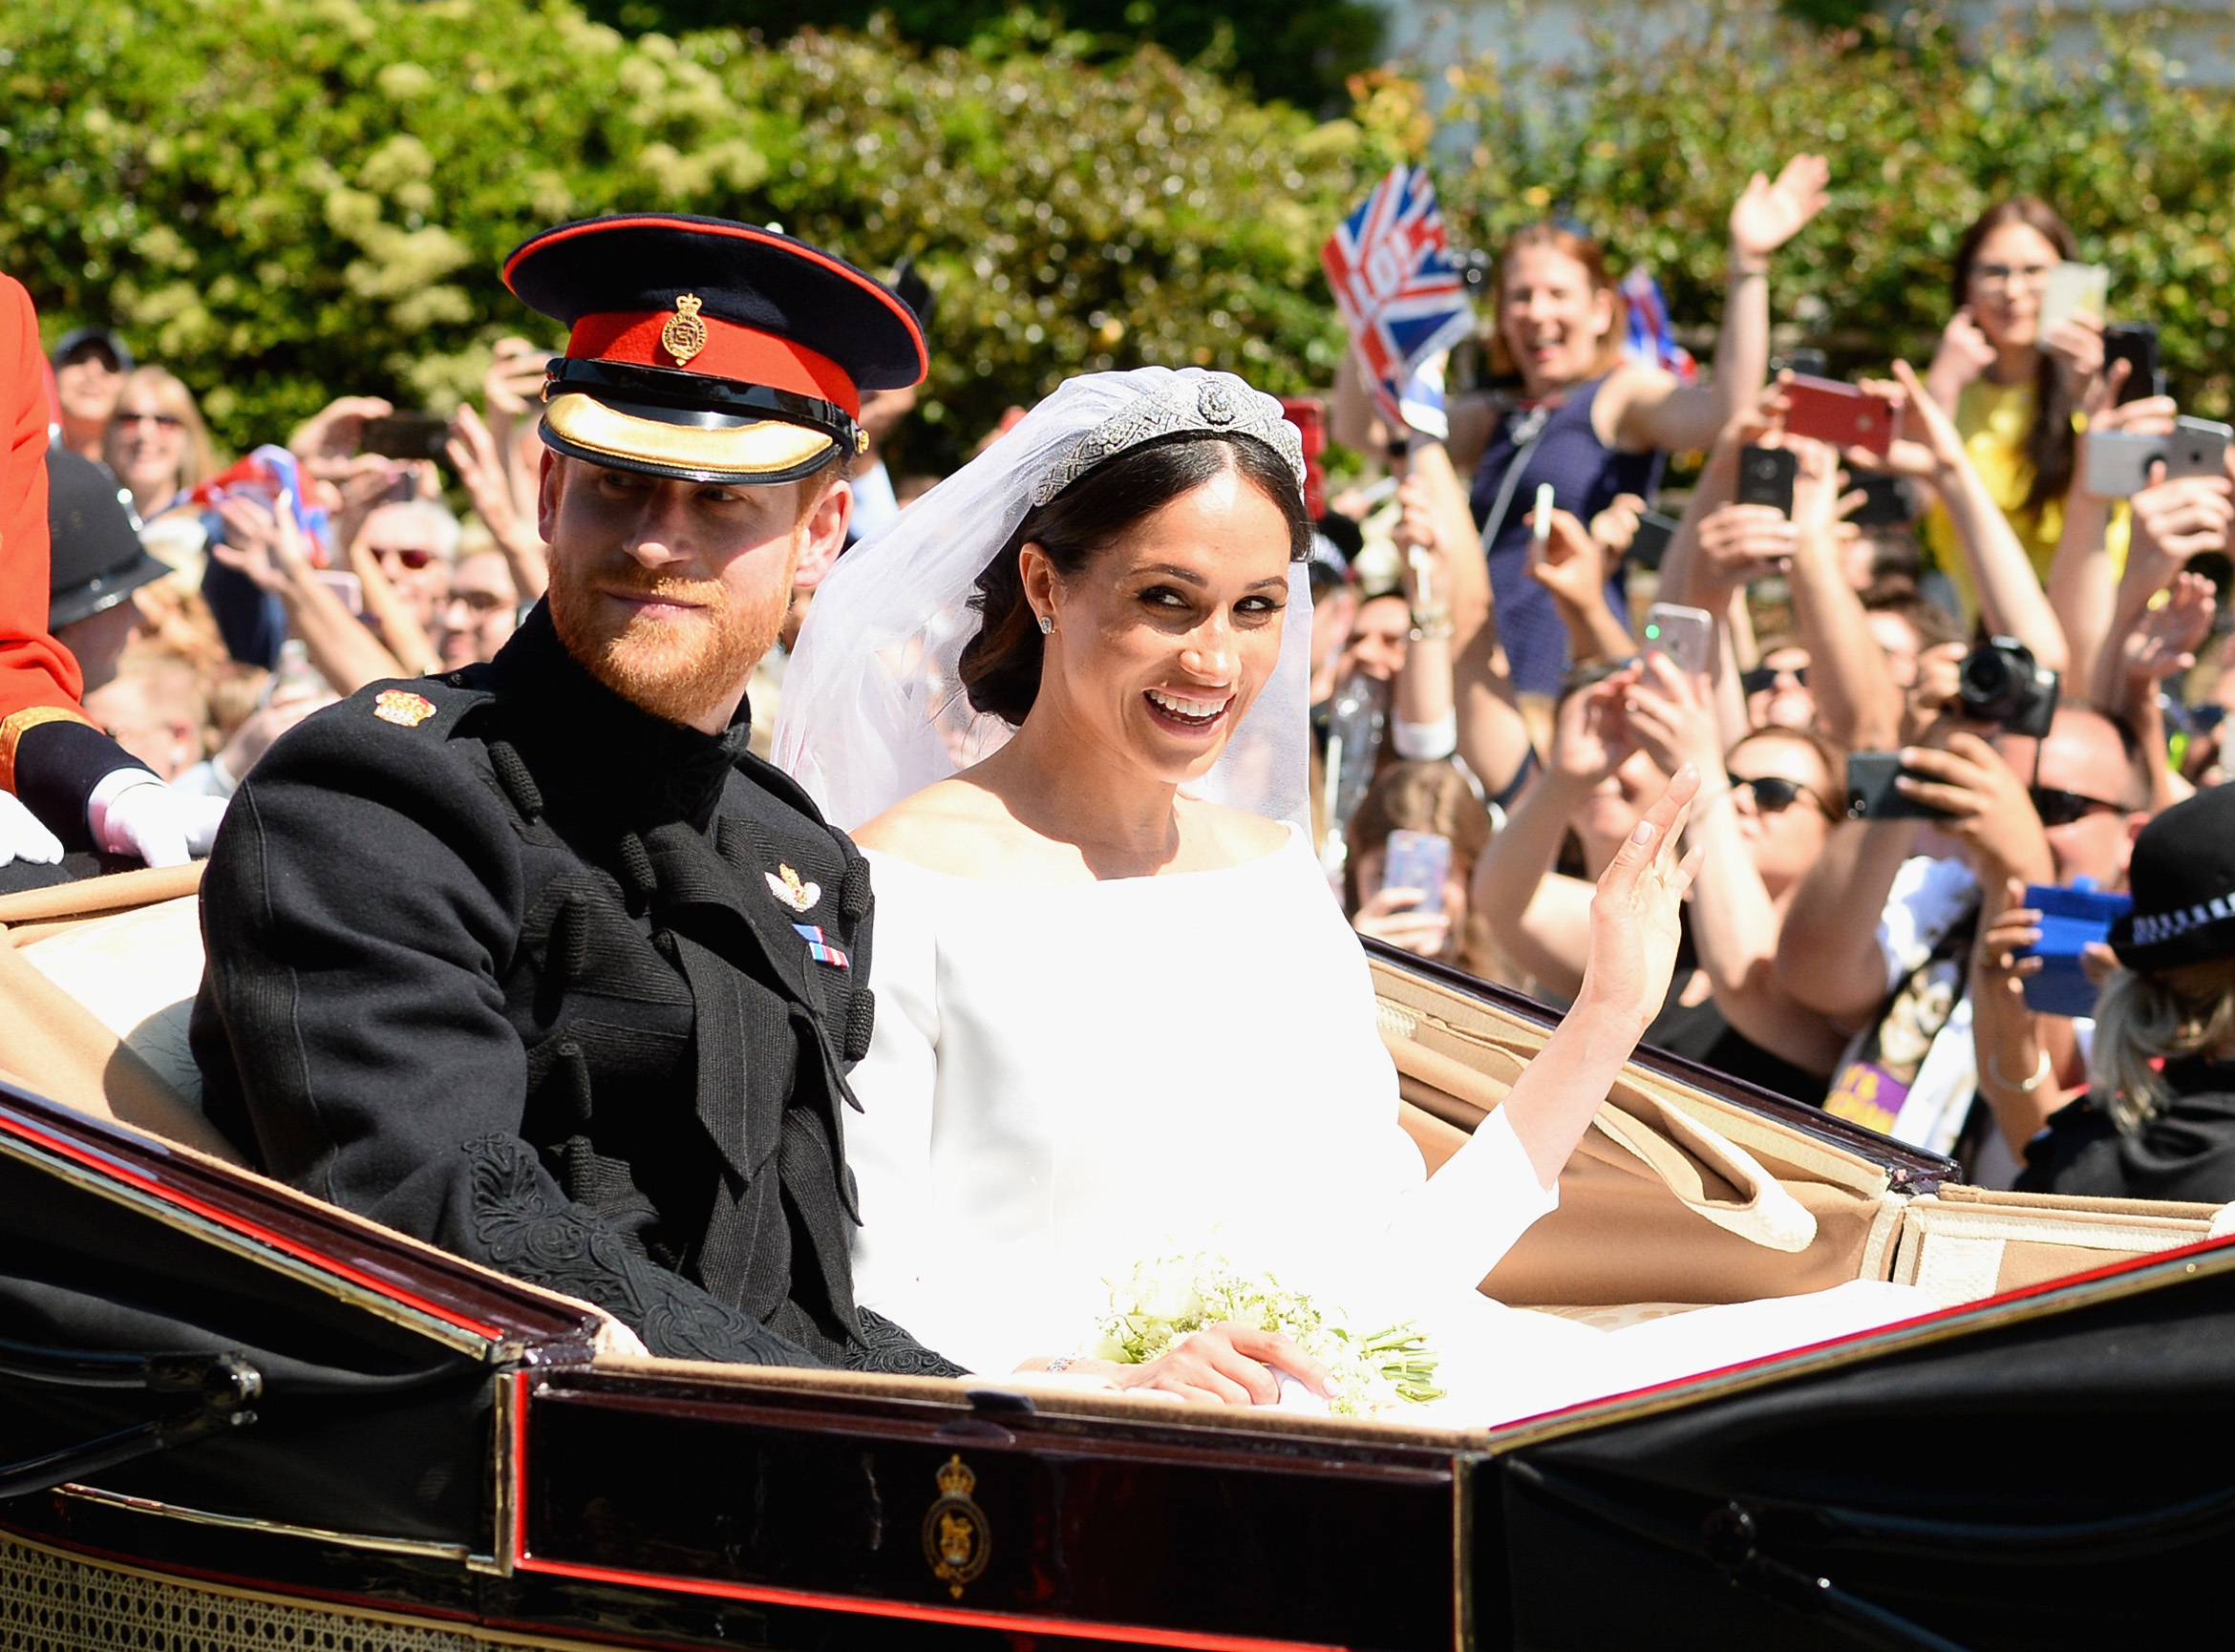 The Duke and Duchess of Sussex leave Windsor Castle in the Ascot Landau carriage (Eamonn M. McCormack/Getty Images)